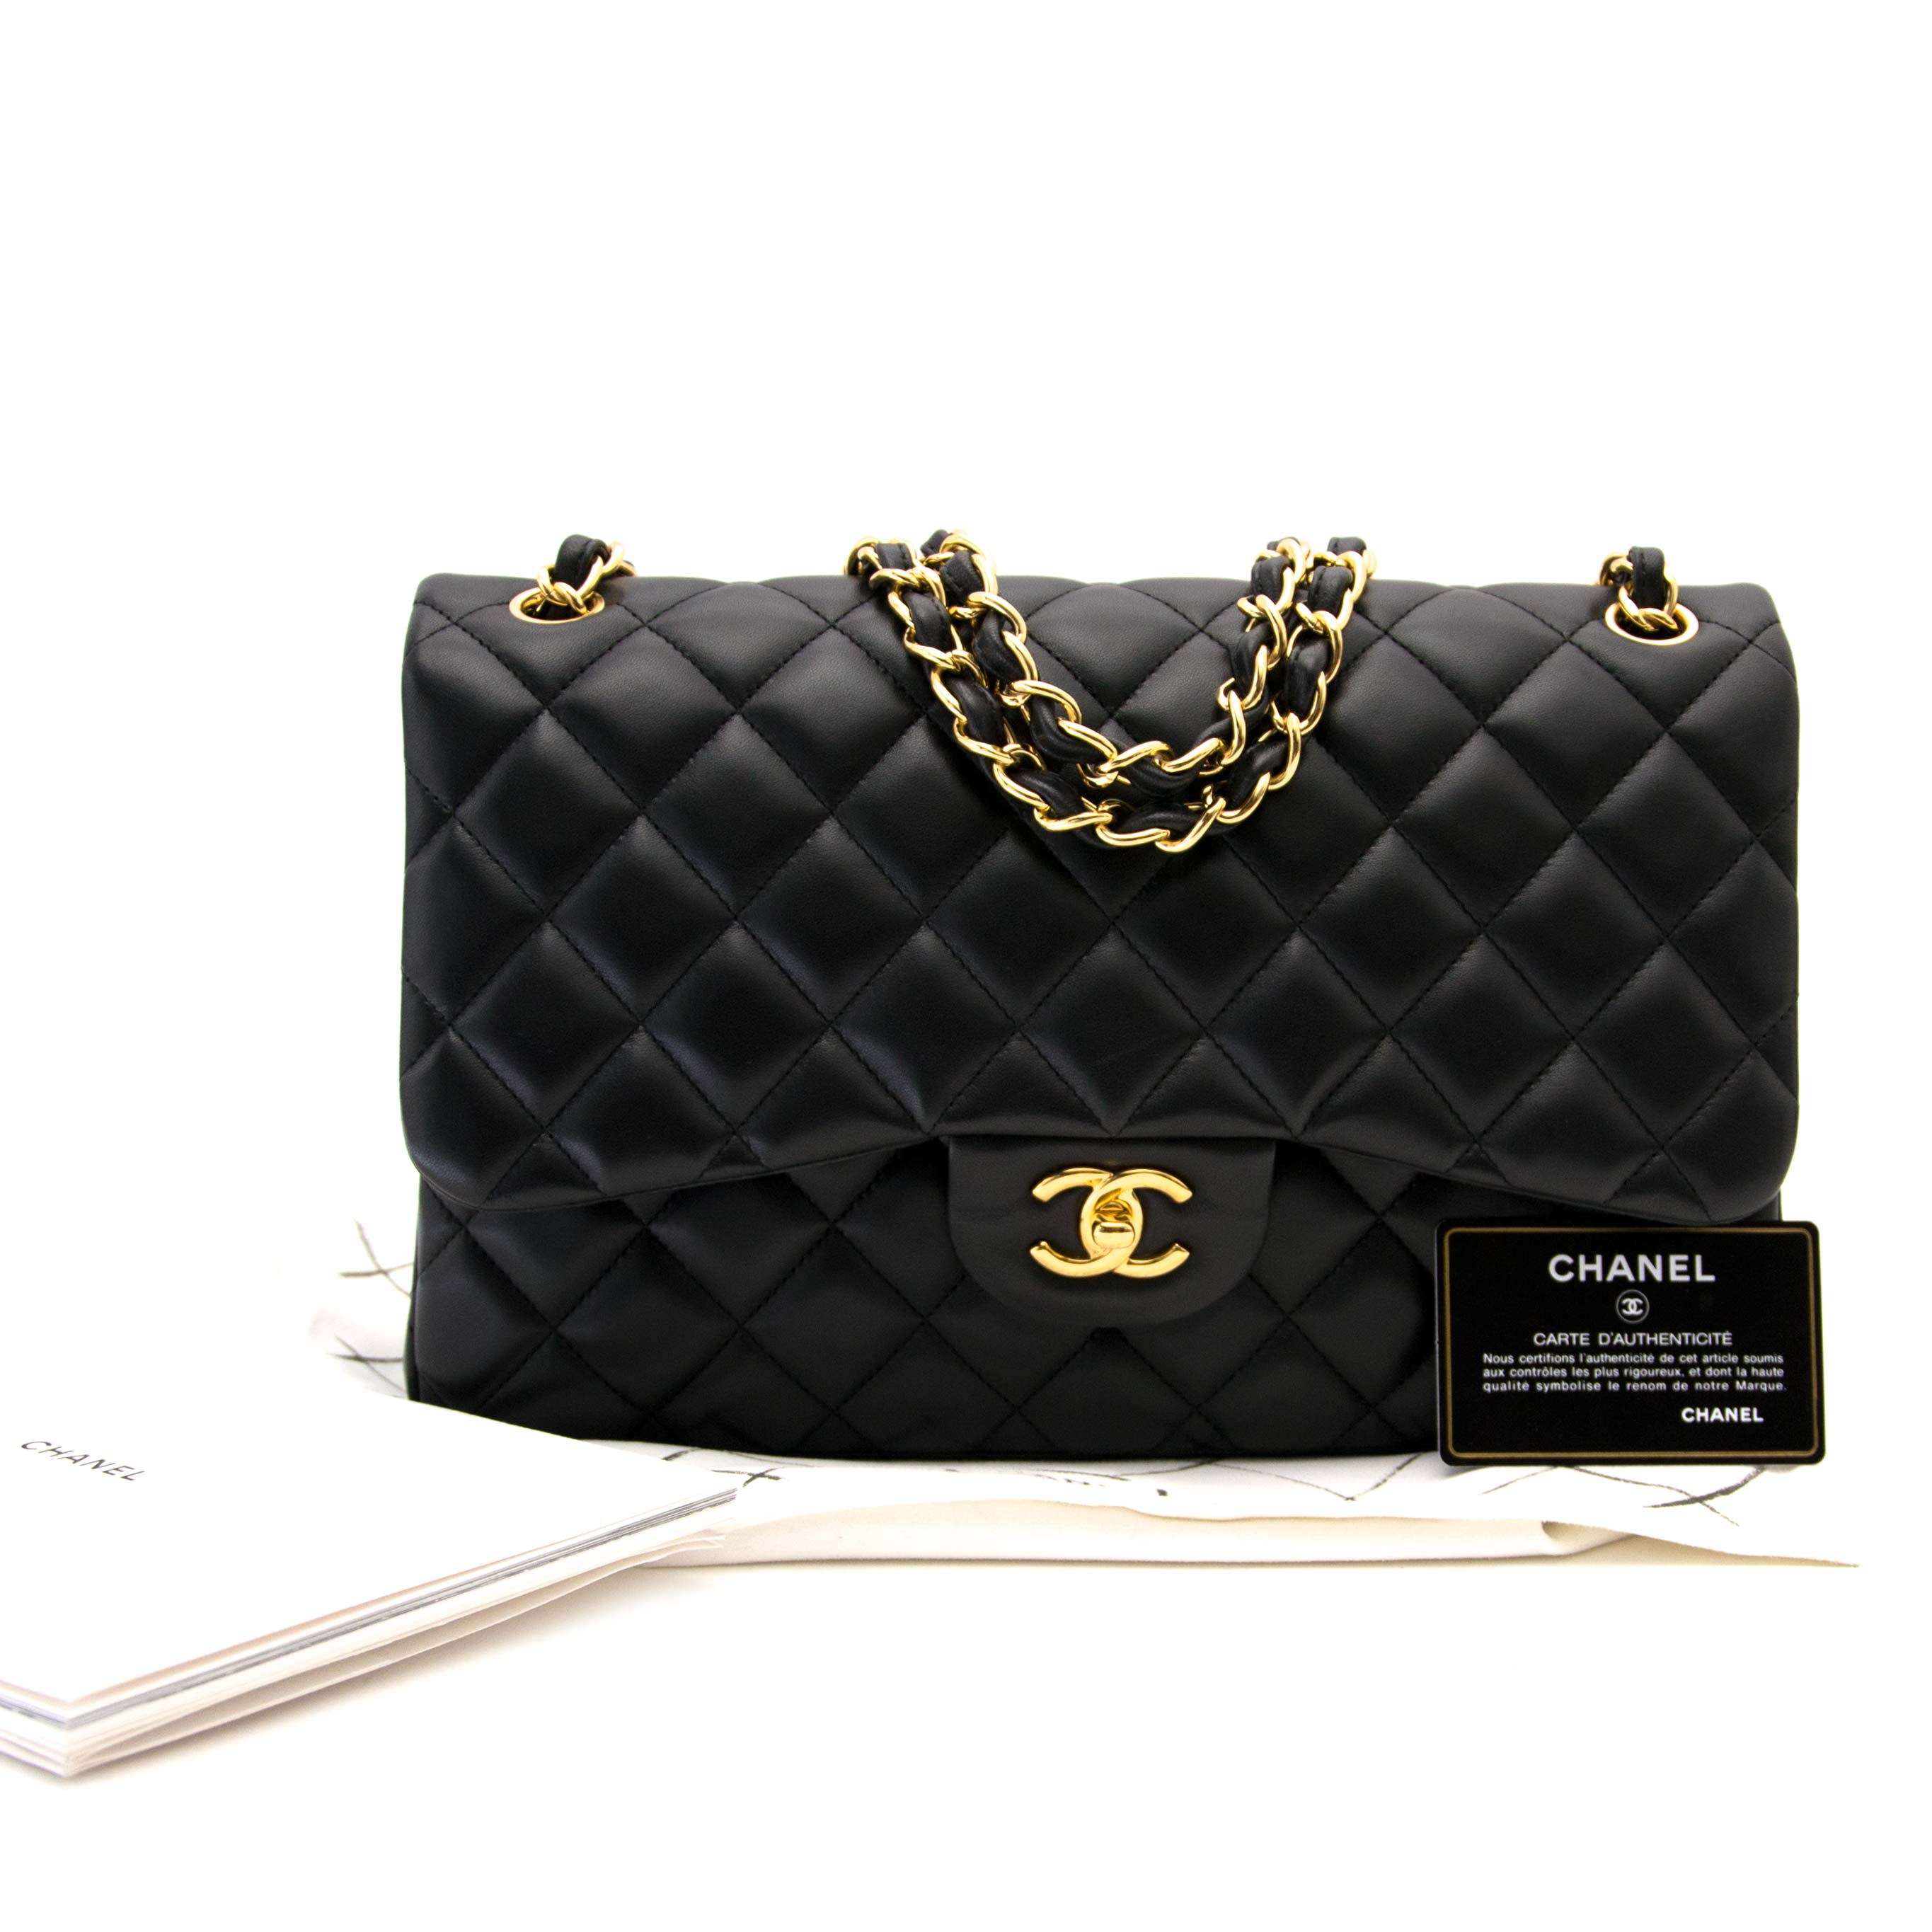 shop online at the best price your secondhand Chanel Black Lambskin Classic Double Flap Bag